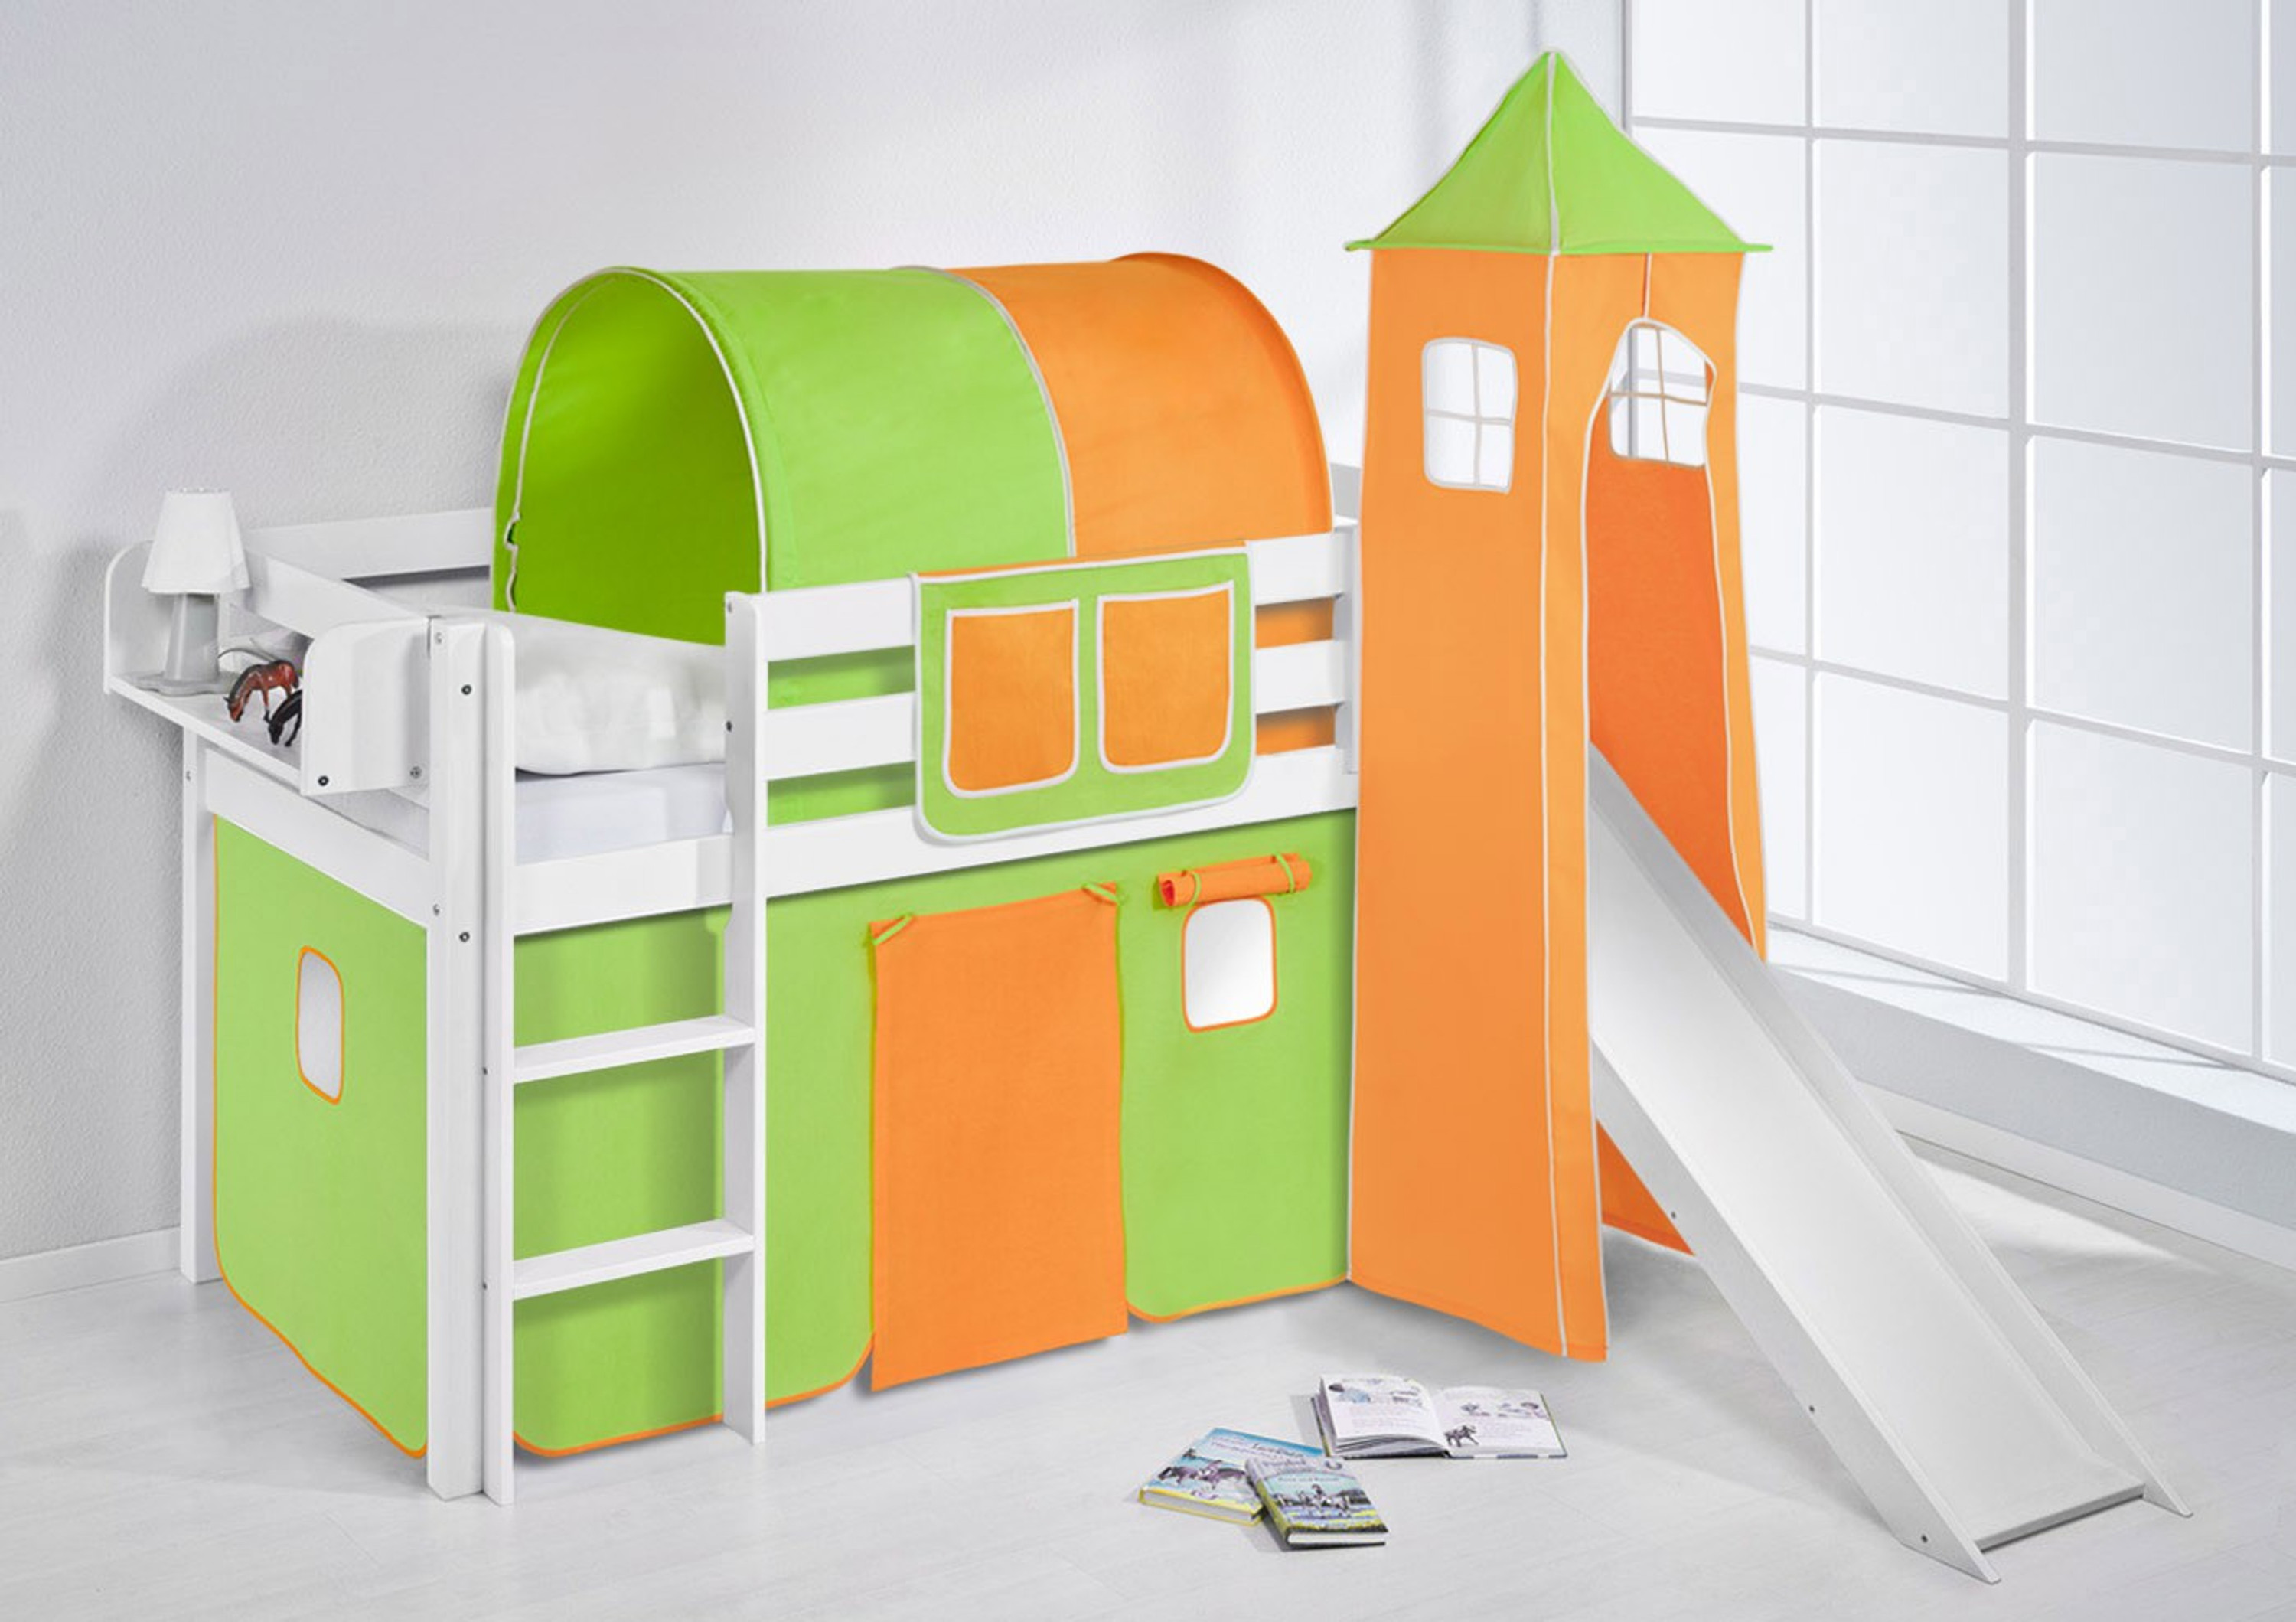 spielbett 90 x 190 cm gr n orange wei mit turm rutsche und vorhang jelle m bel baby. Black Bedroom Furniture Sets. Home Design Ideas